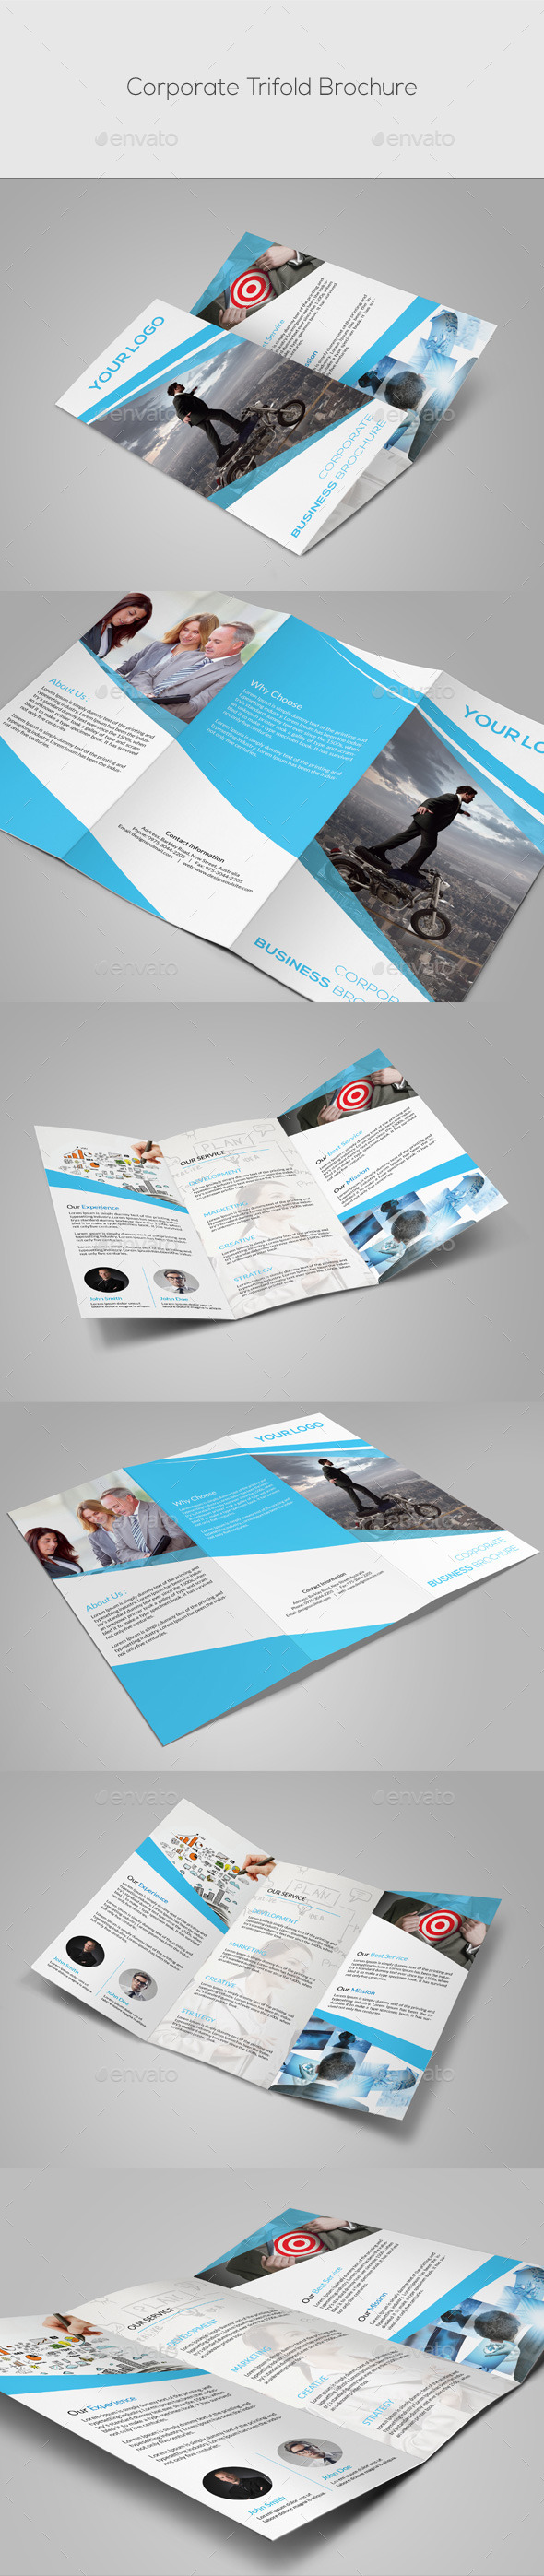 GraphicRiver Corporate Trifold Brochure 10032456